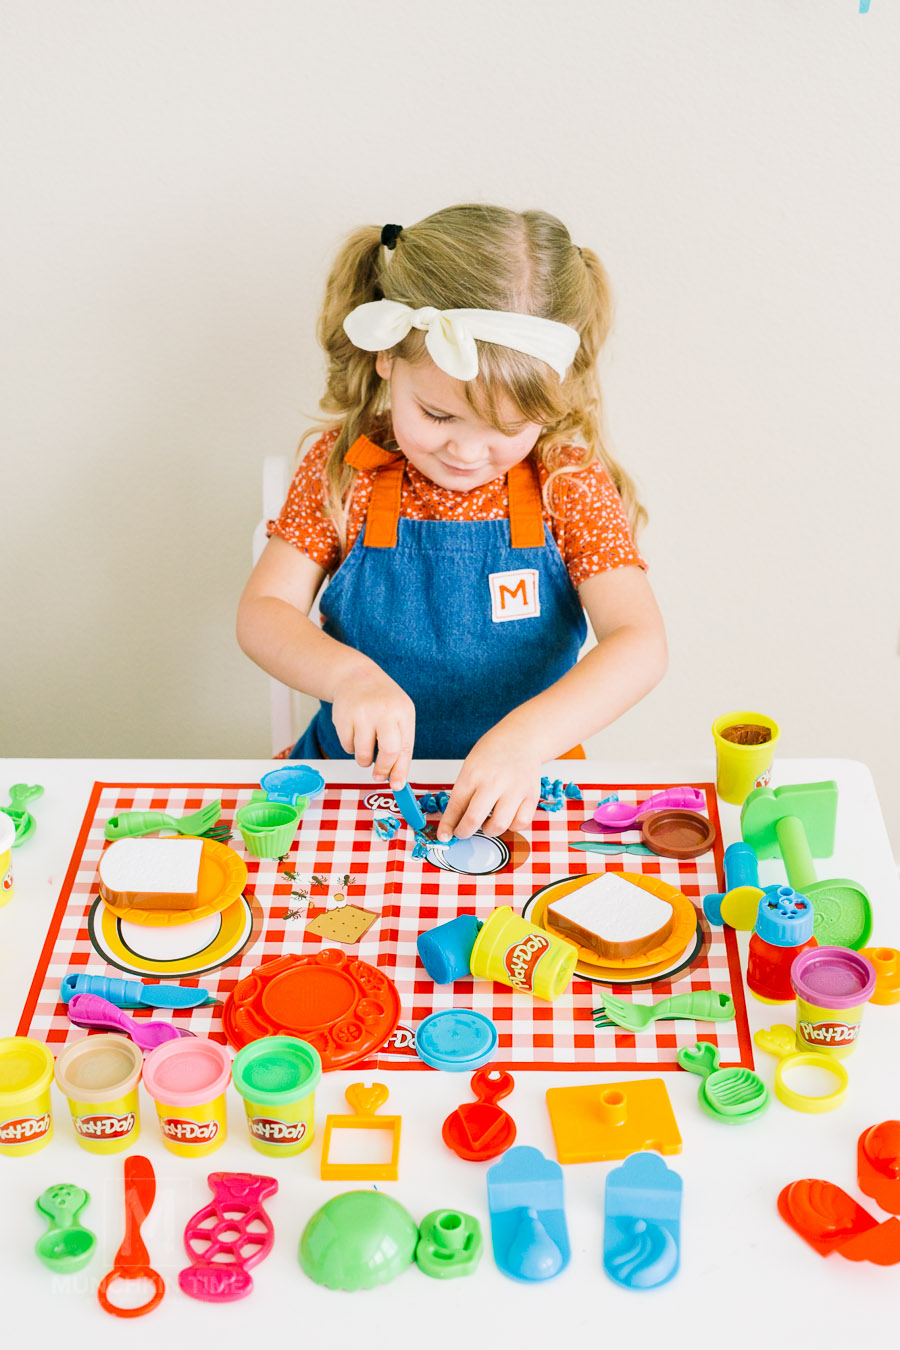 Best Kids Toys 2017 - a top toy list to get for kids this holiday season. I am so excited to partner up with Fred Meyer Store and help you pick the best toys for your little thinker, artist, imaginative or outdoor munchkin.